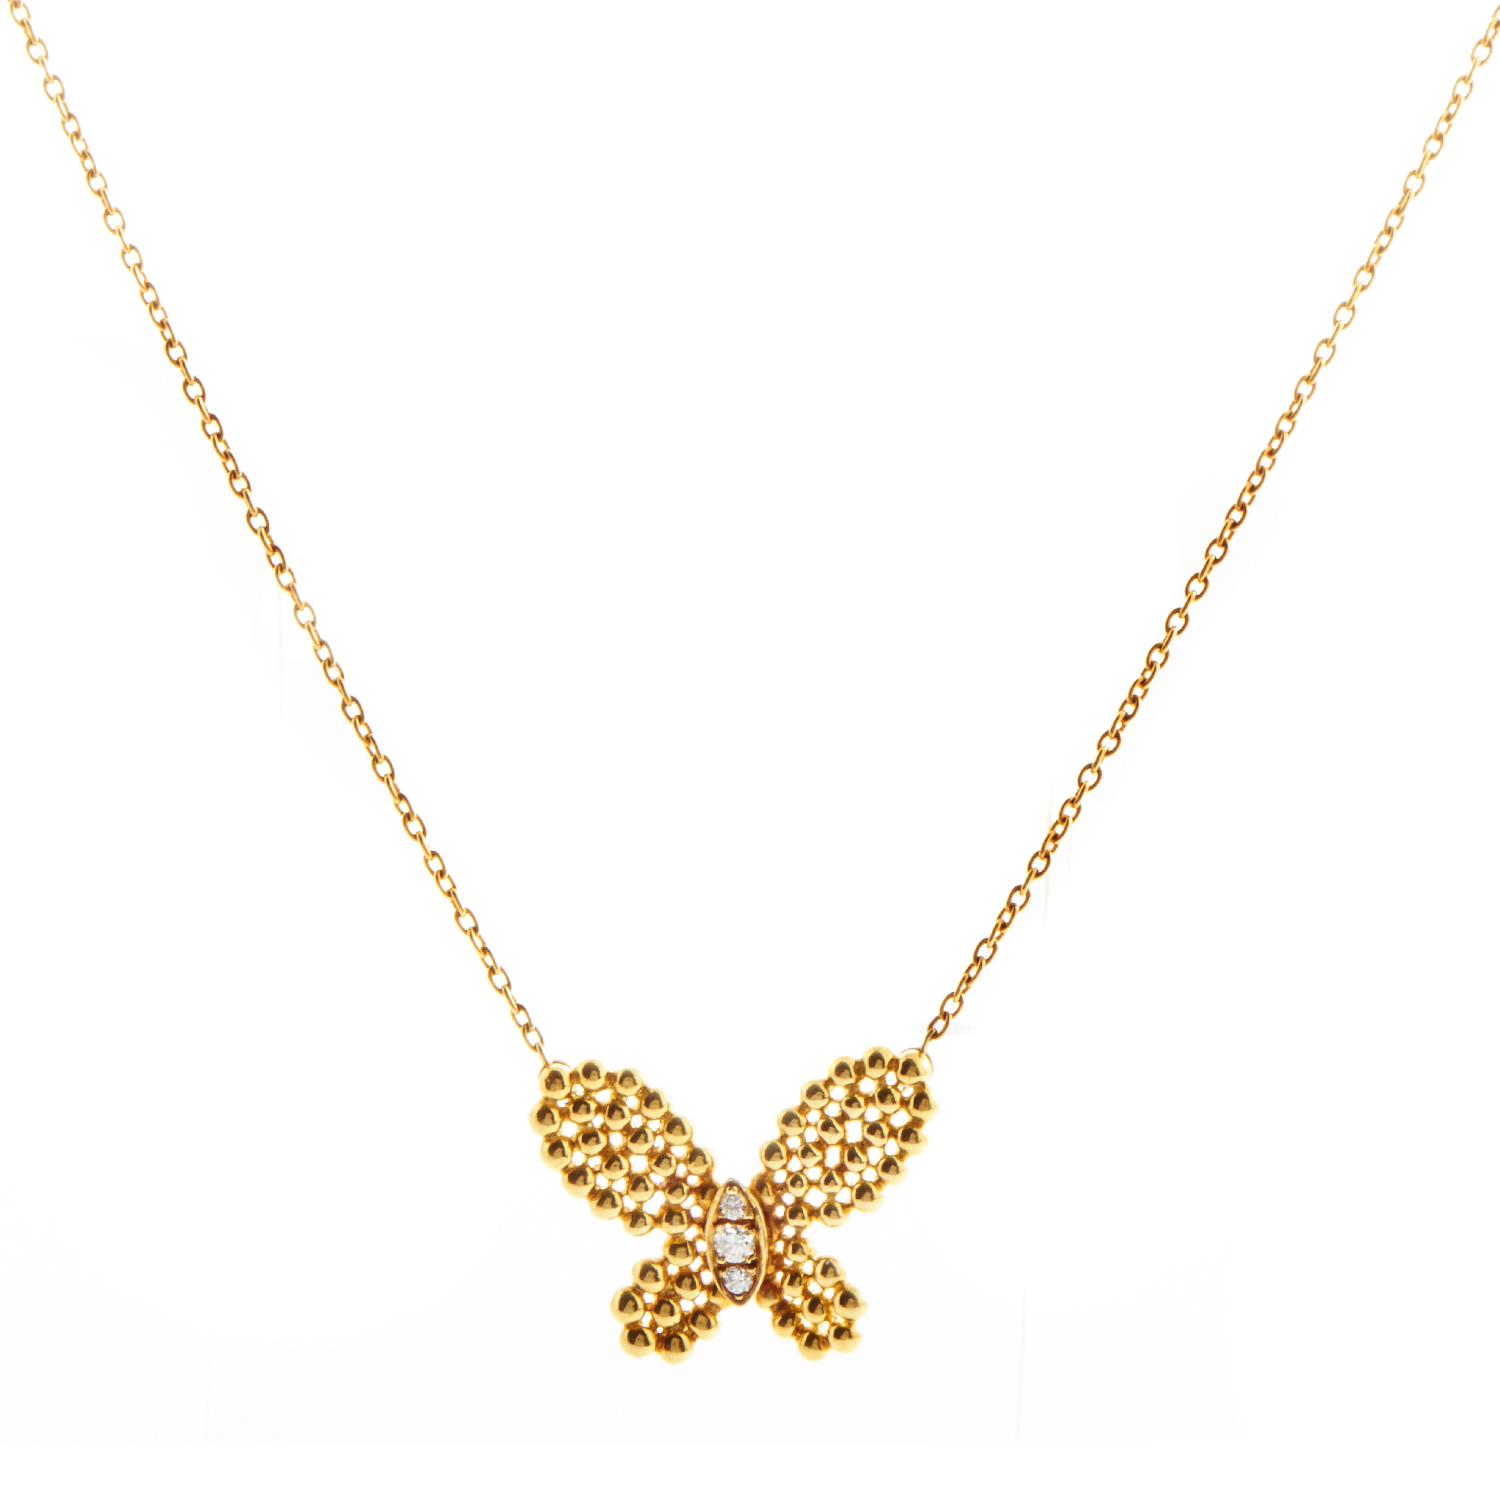 Van Cleef & Arpels Women's 18K Yellow Gold Diamond Butterfly Pendant Necklace